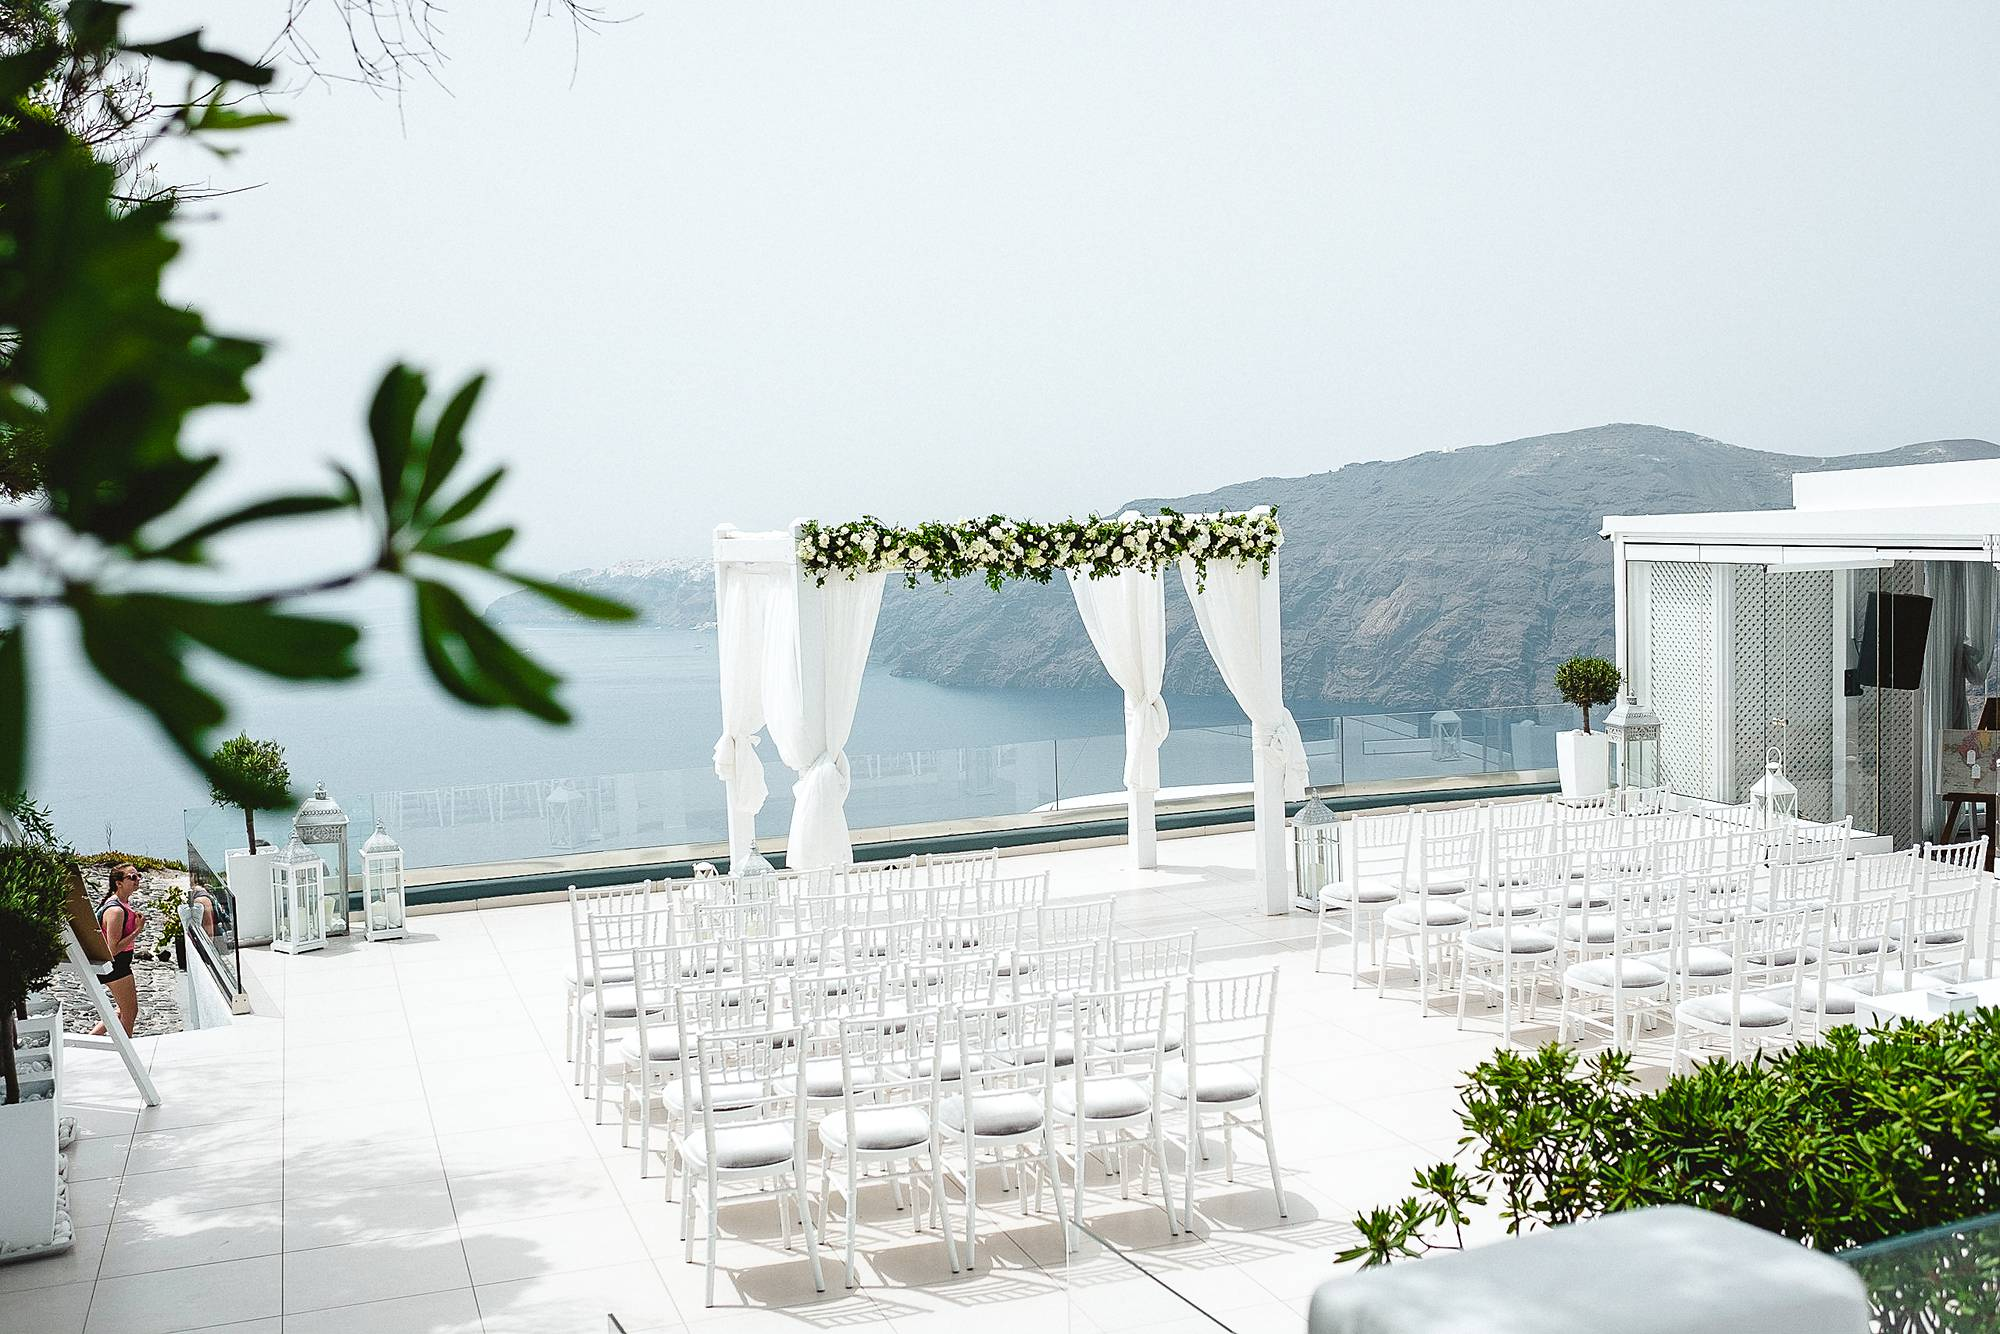 Santorini-Wedding-Photographer-36.jpg